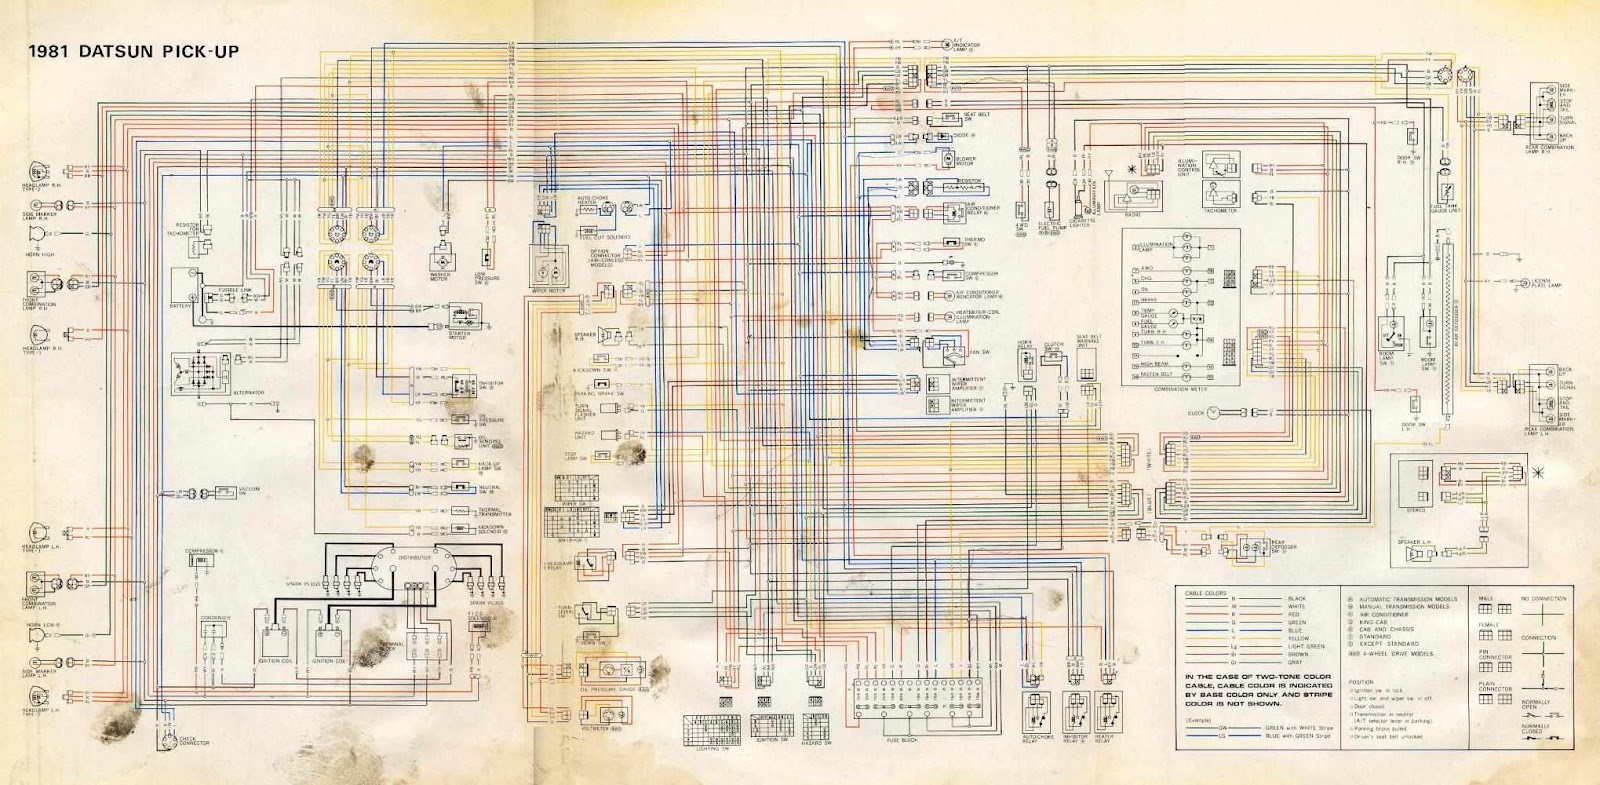 1978 Nissan 280z Fuel System Diagram As Well 1982 Nissan 280zx ... on 1978 280z wiring diagram, 1971 240z wiring diagram, 1975 280z wiring diagram, 1977 280z wiring diagram, 1976 280z wiring diagram,